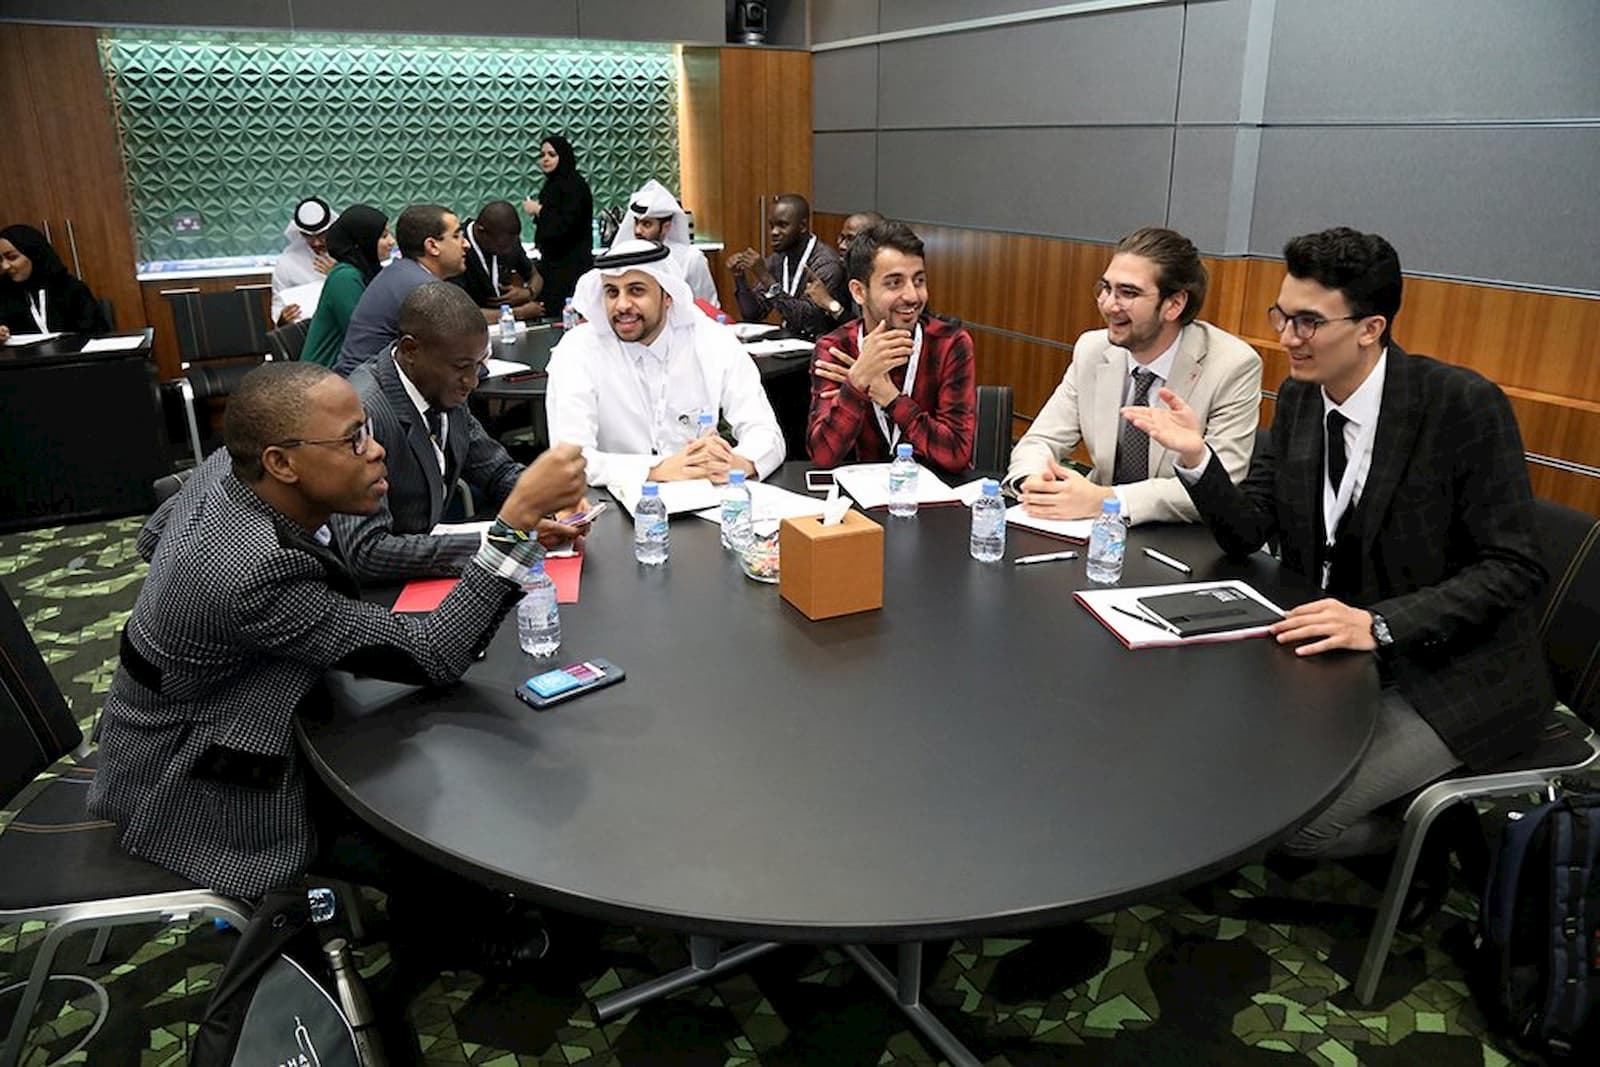 This is an image of young participants at the Doha Islamic Youth Forum.